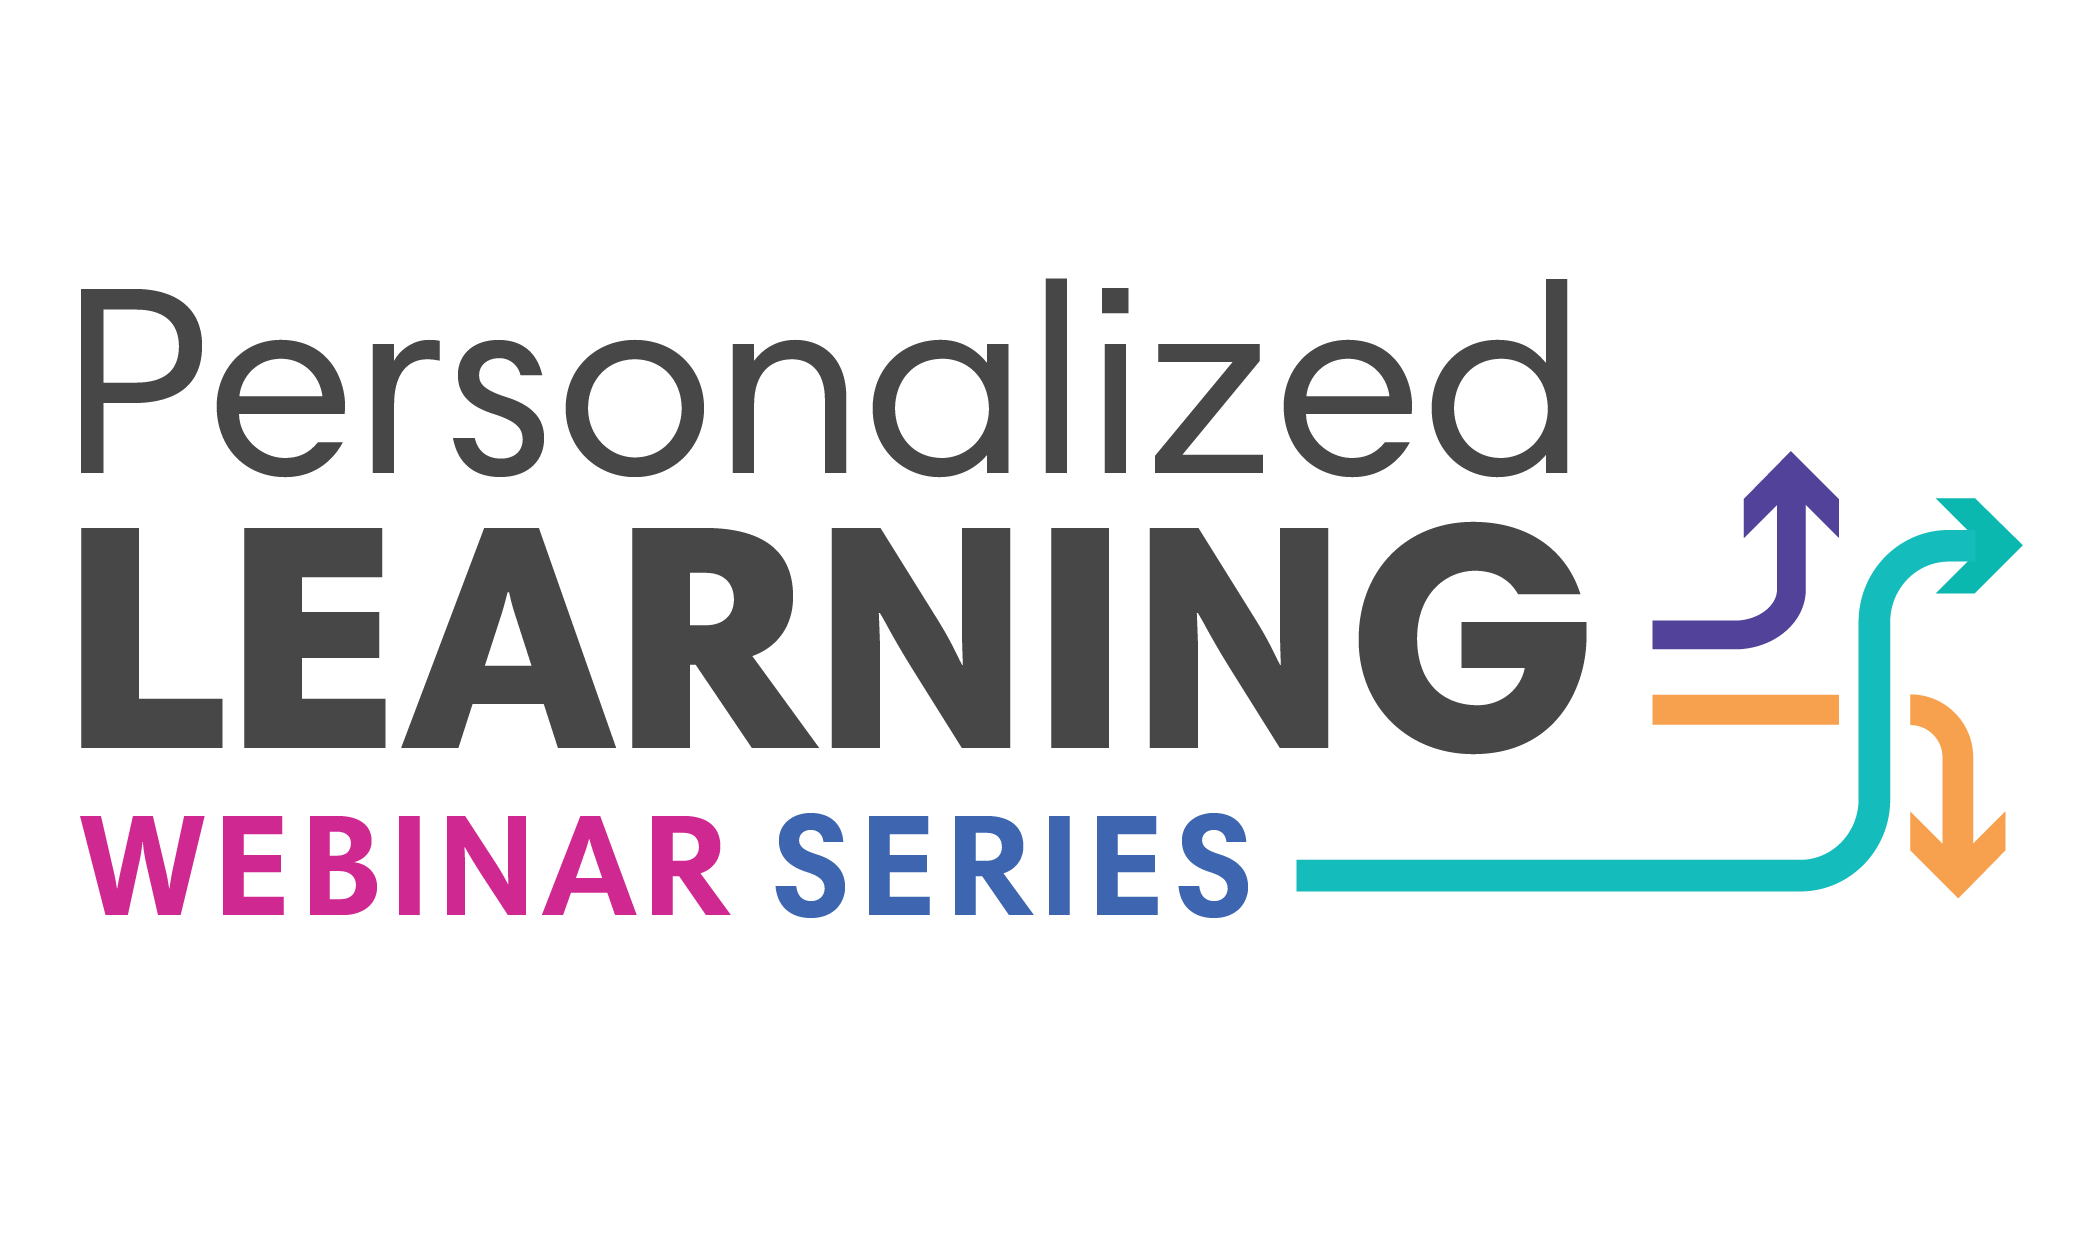 Personalized Learning Webinar Series